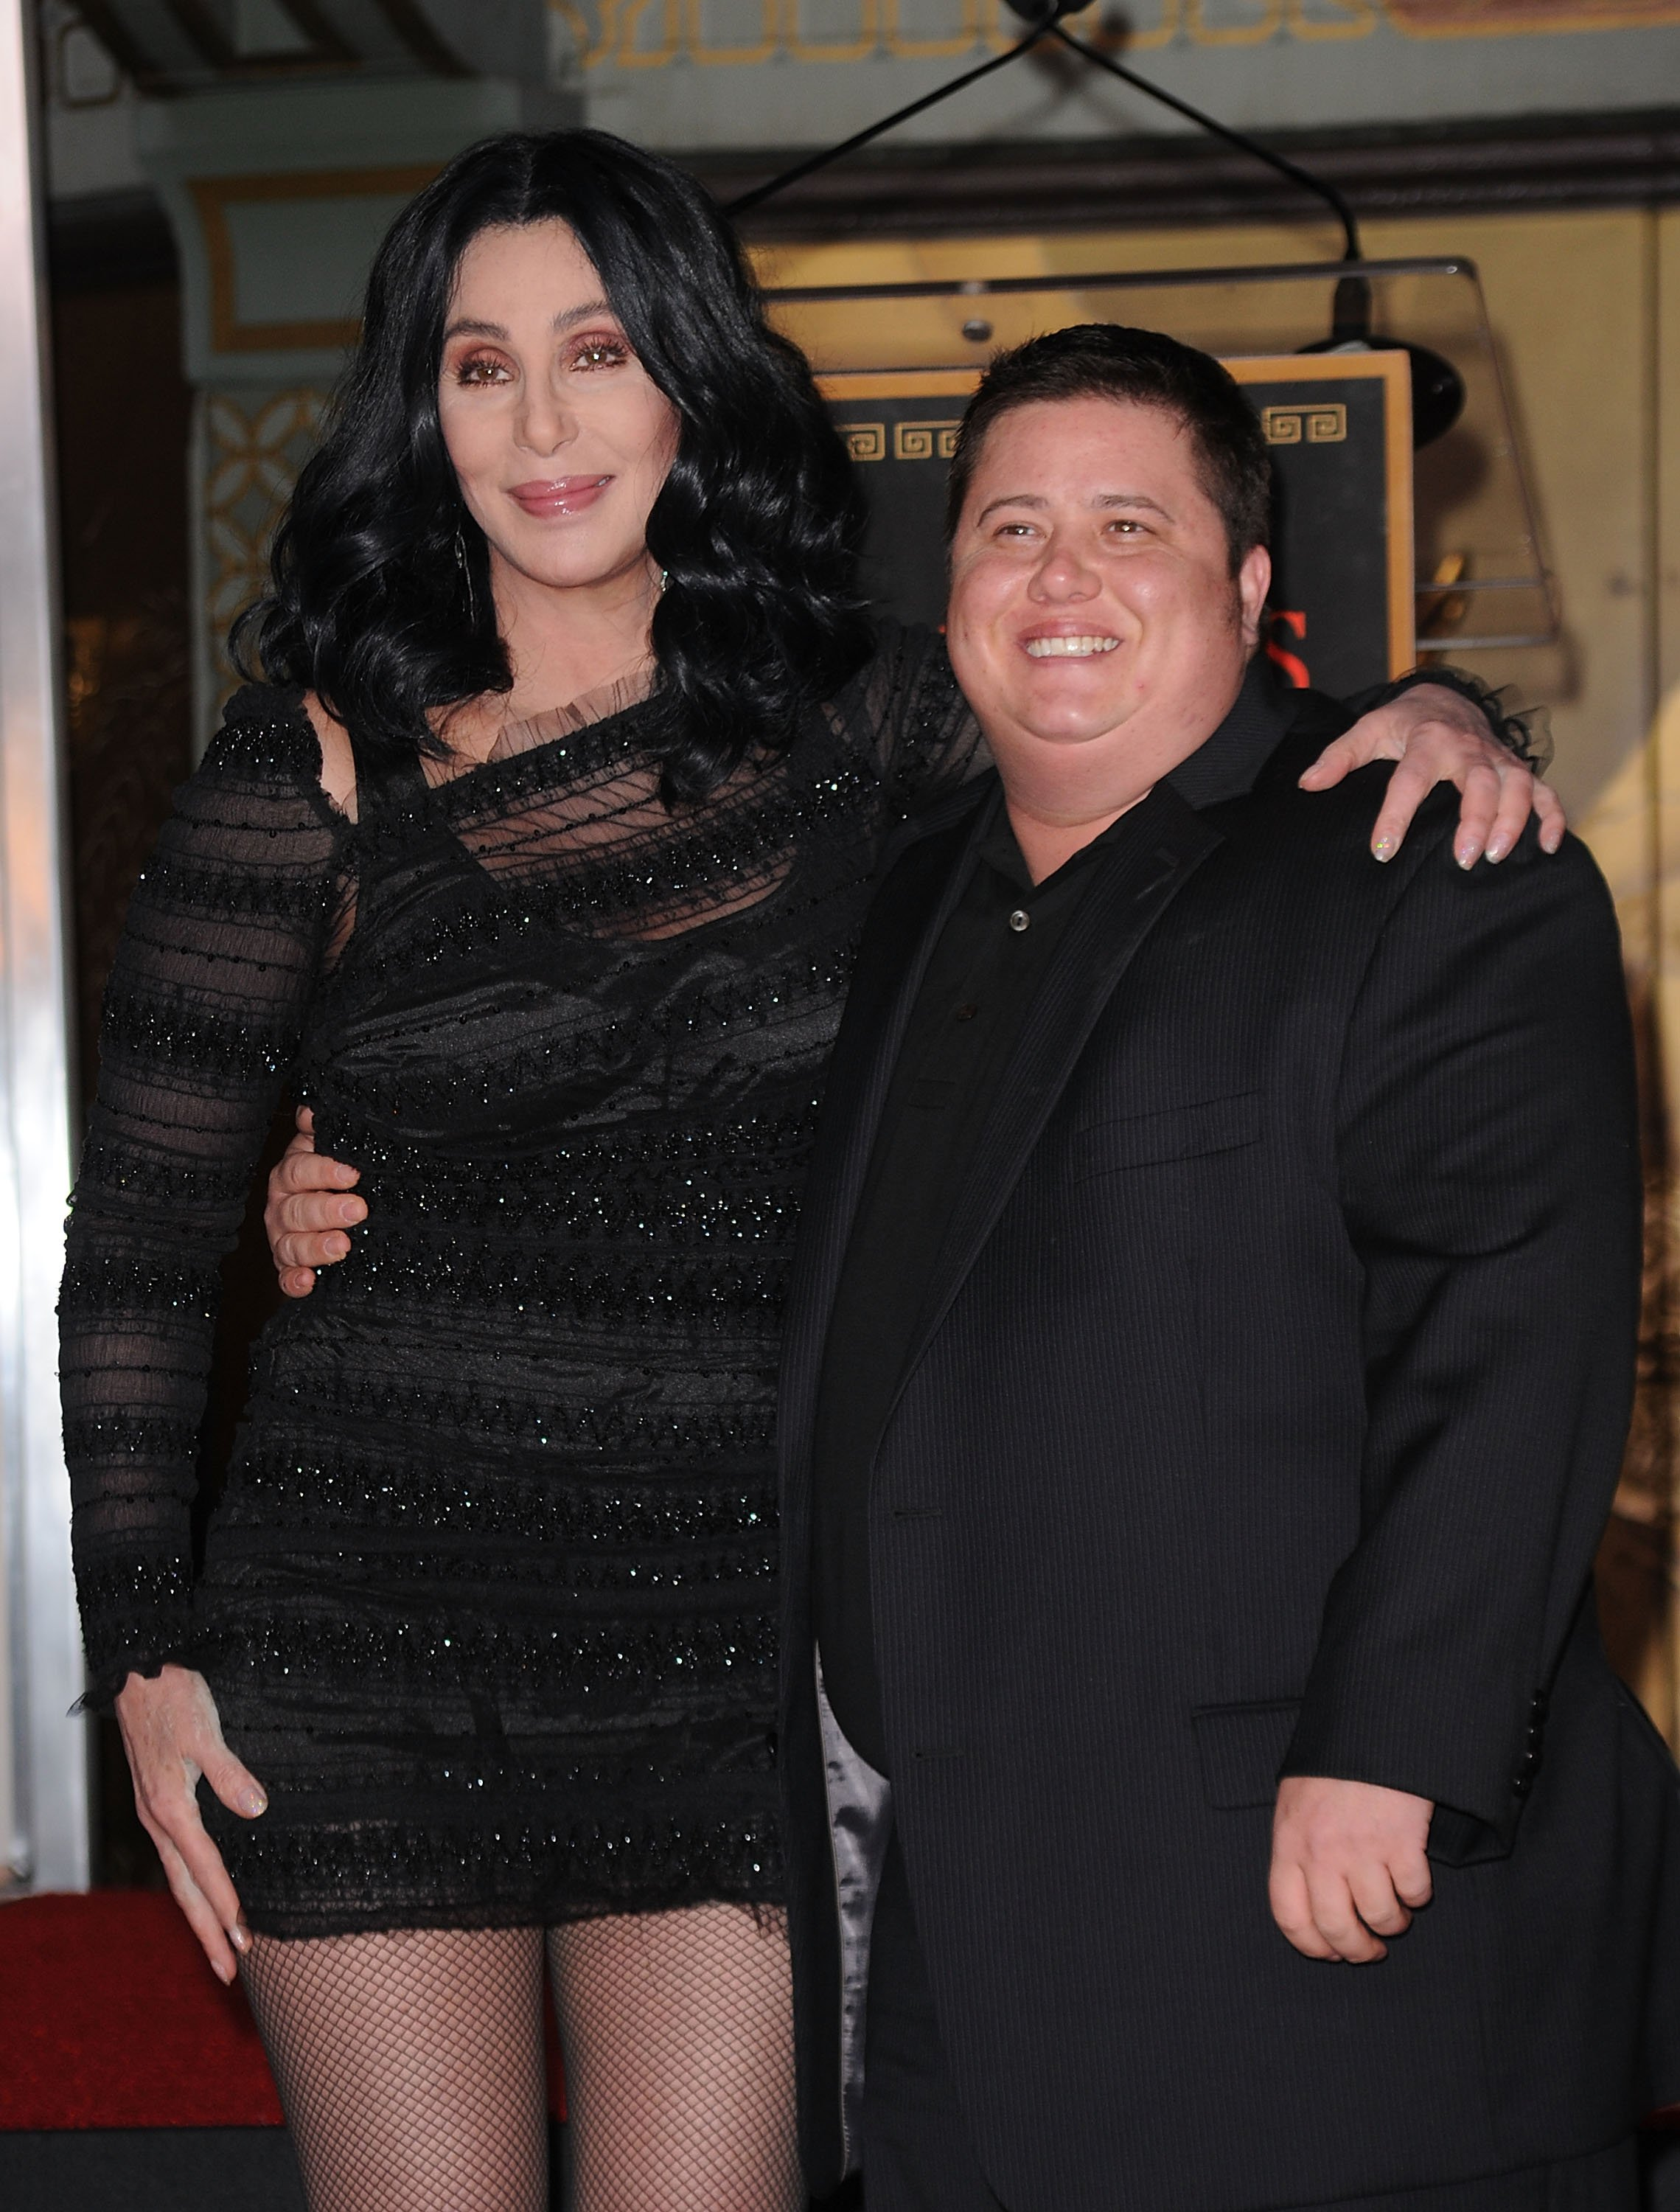 Cher and Chaz Bono pose as Cher is immortalized with hand and footprint ceremony at Grauman's Chinese Theatre on November 18, 2010 | Photo: GettyImages